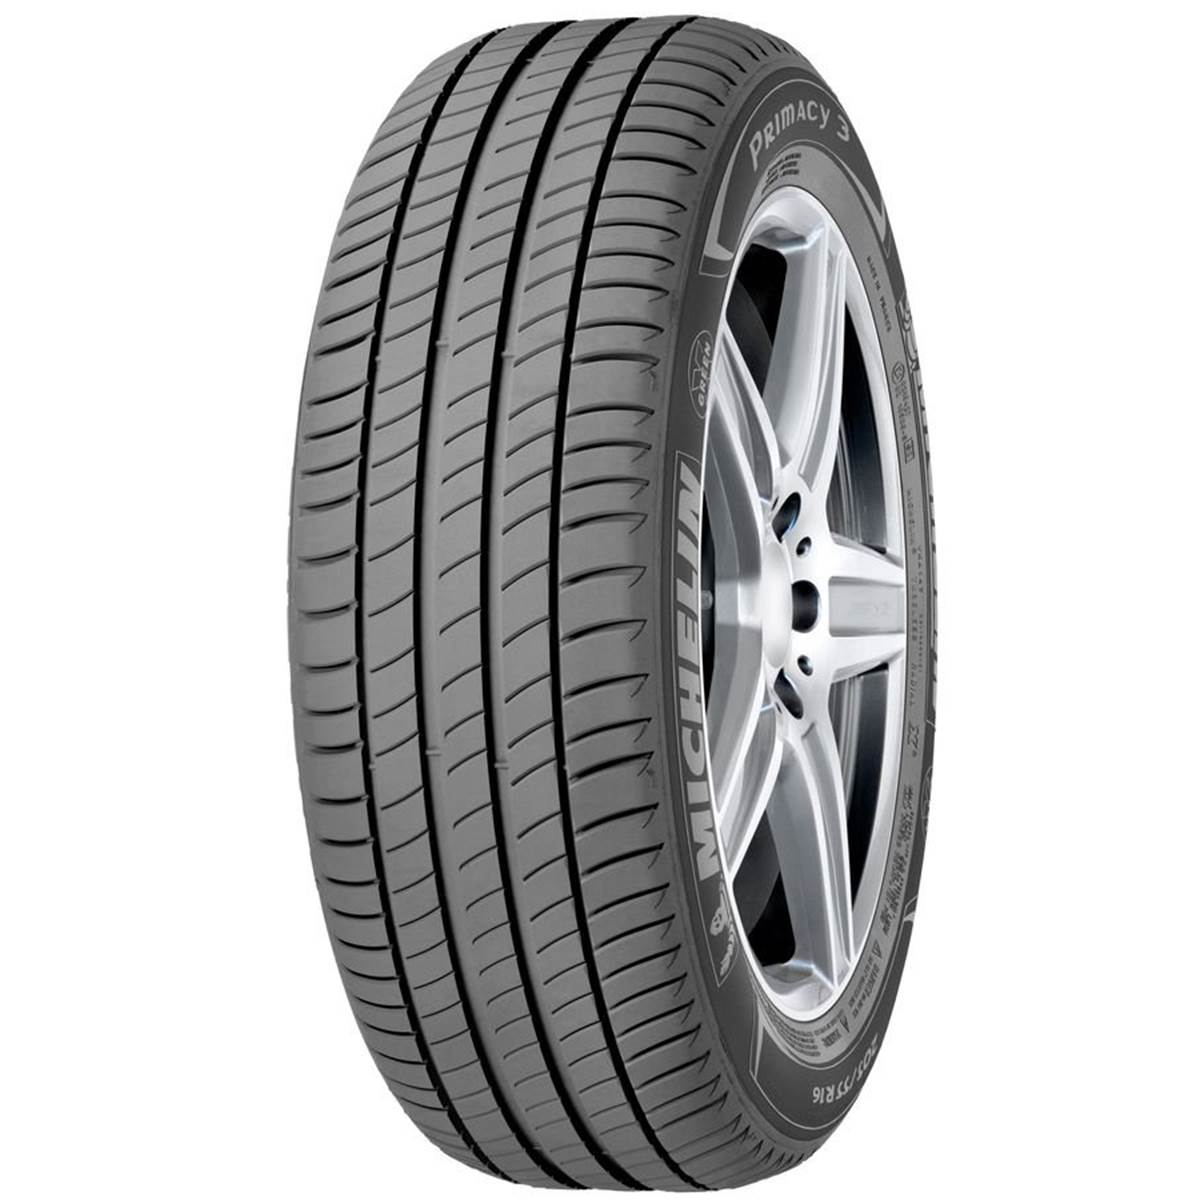 Pneu MICHELIN 245/45R18 100W Primacy 3 XL